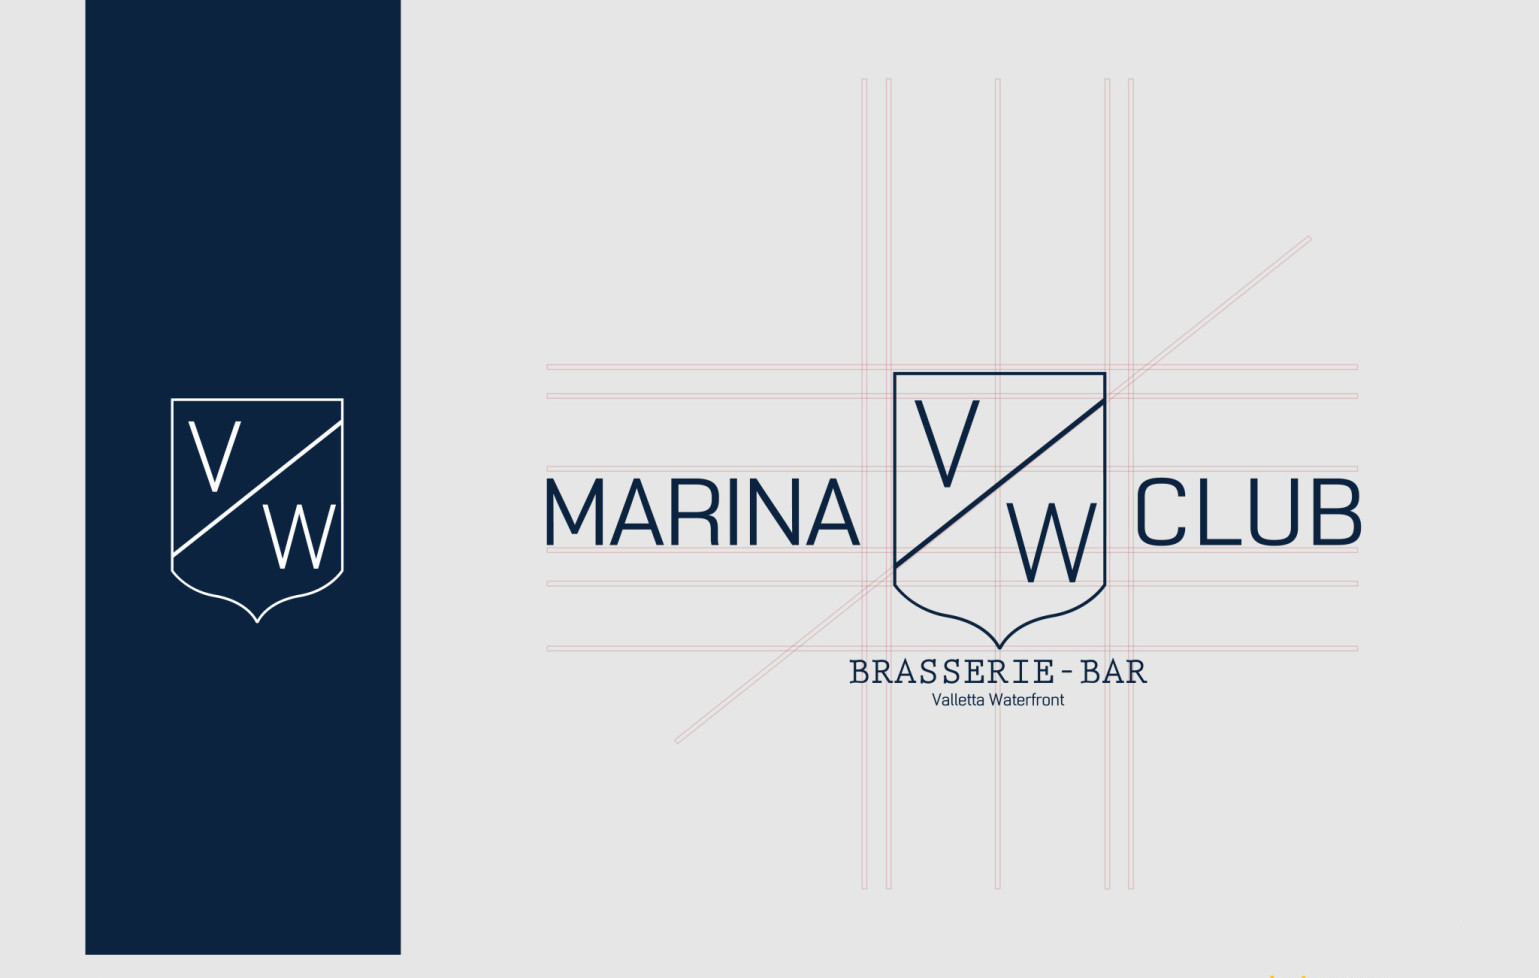 marina-vw-club-branding-3-1-copia